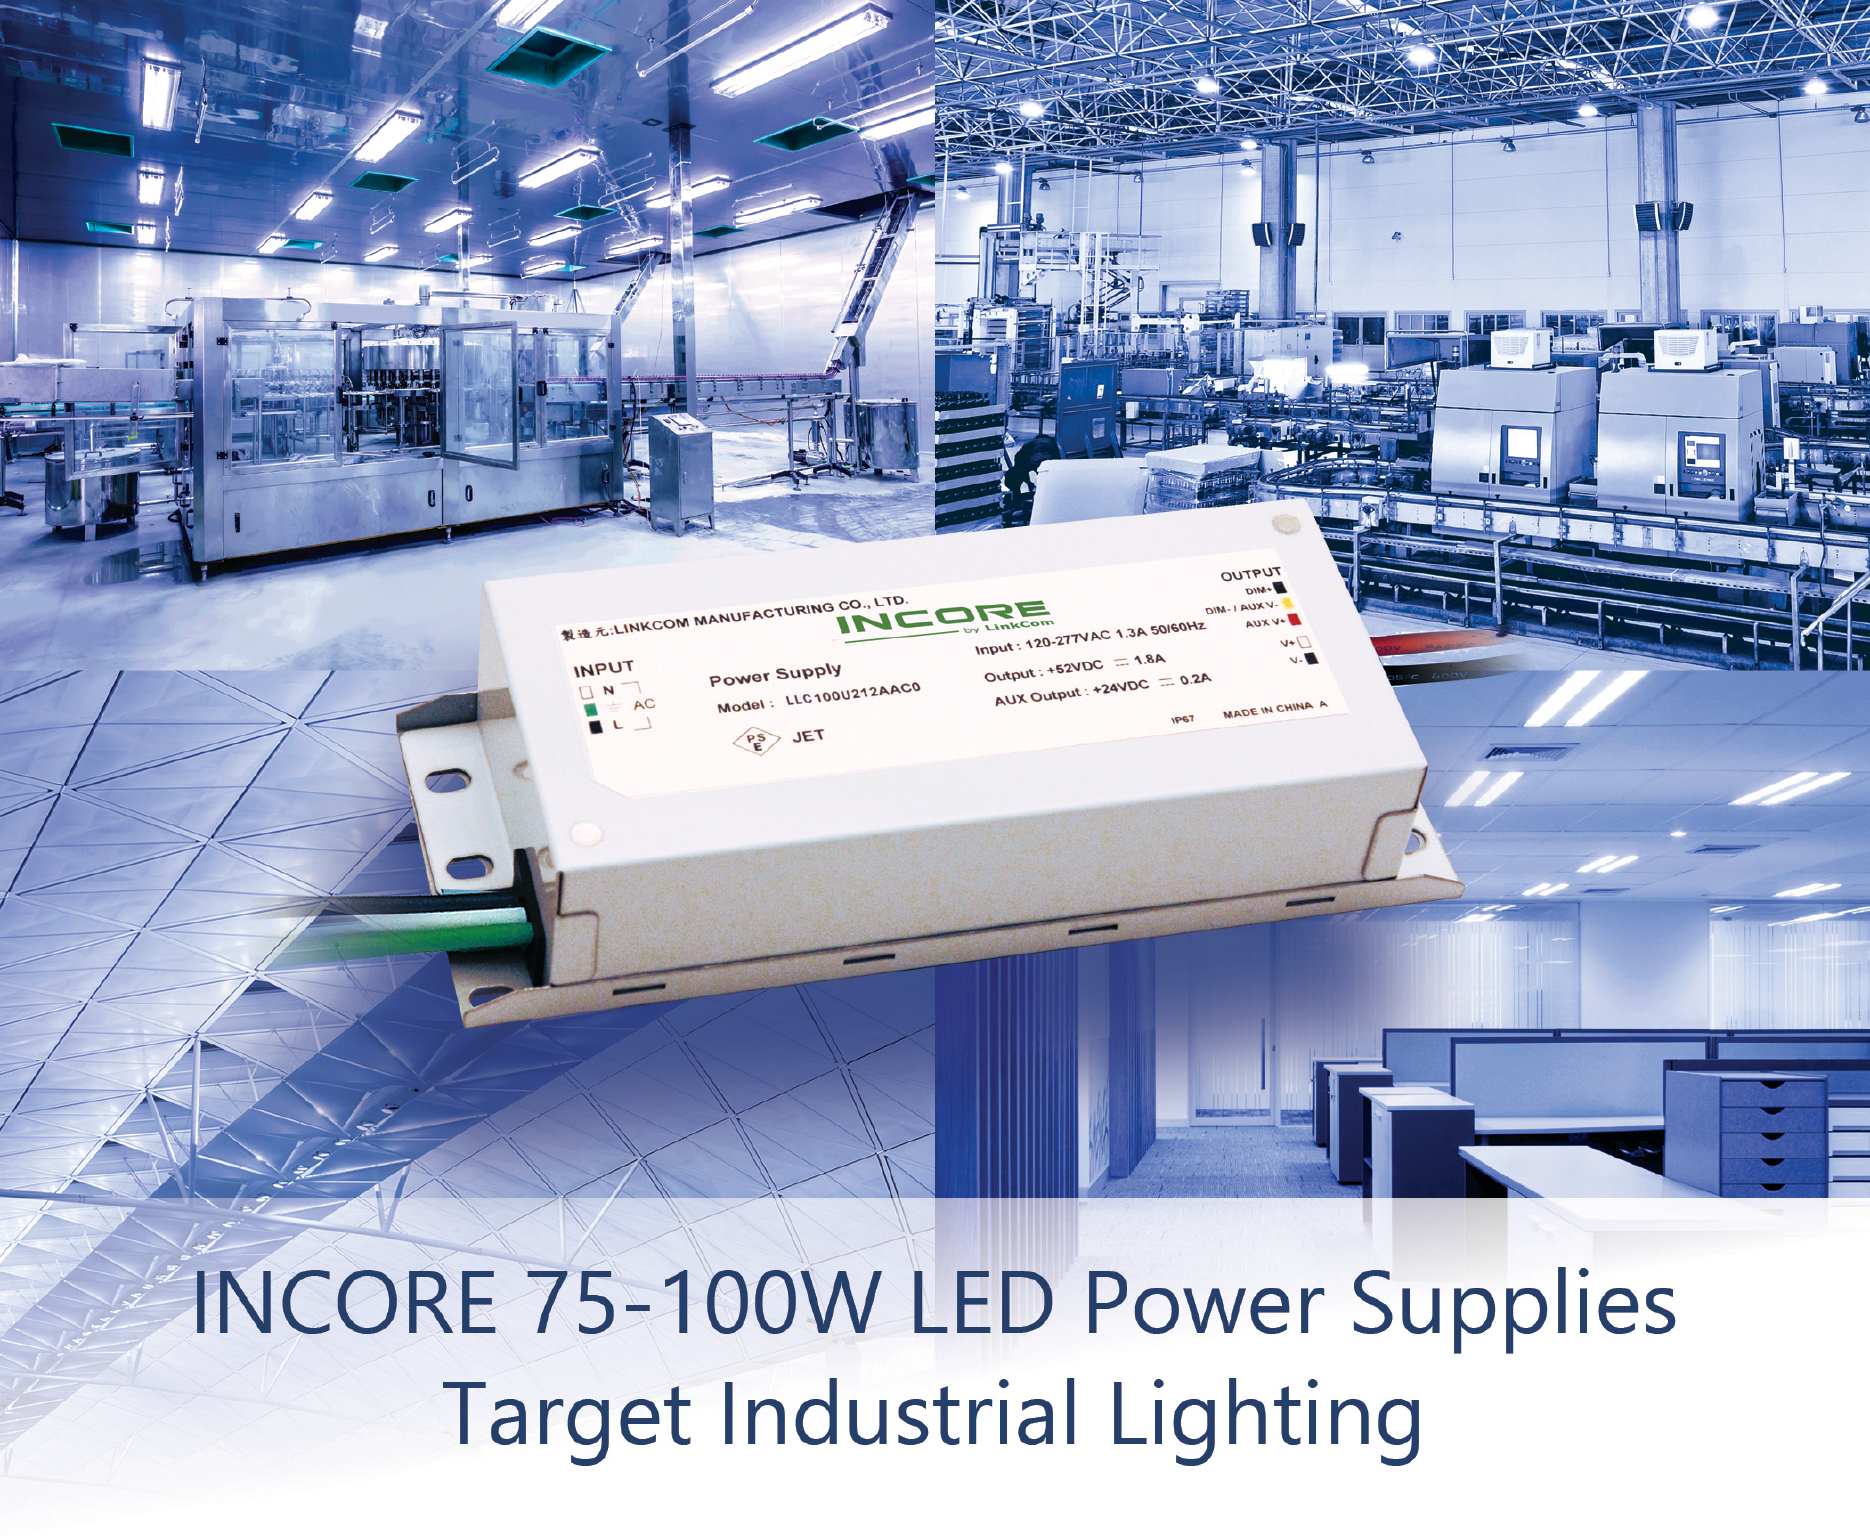 LED Power Supplies Target Demanding Industrial Lighting